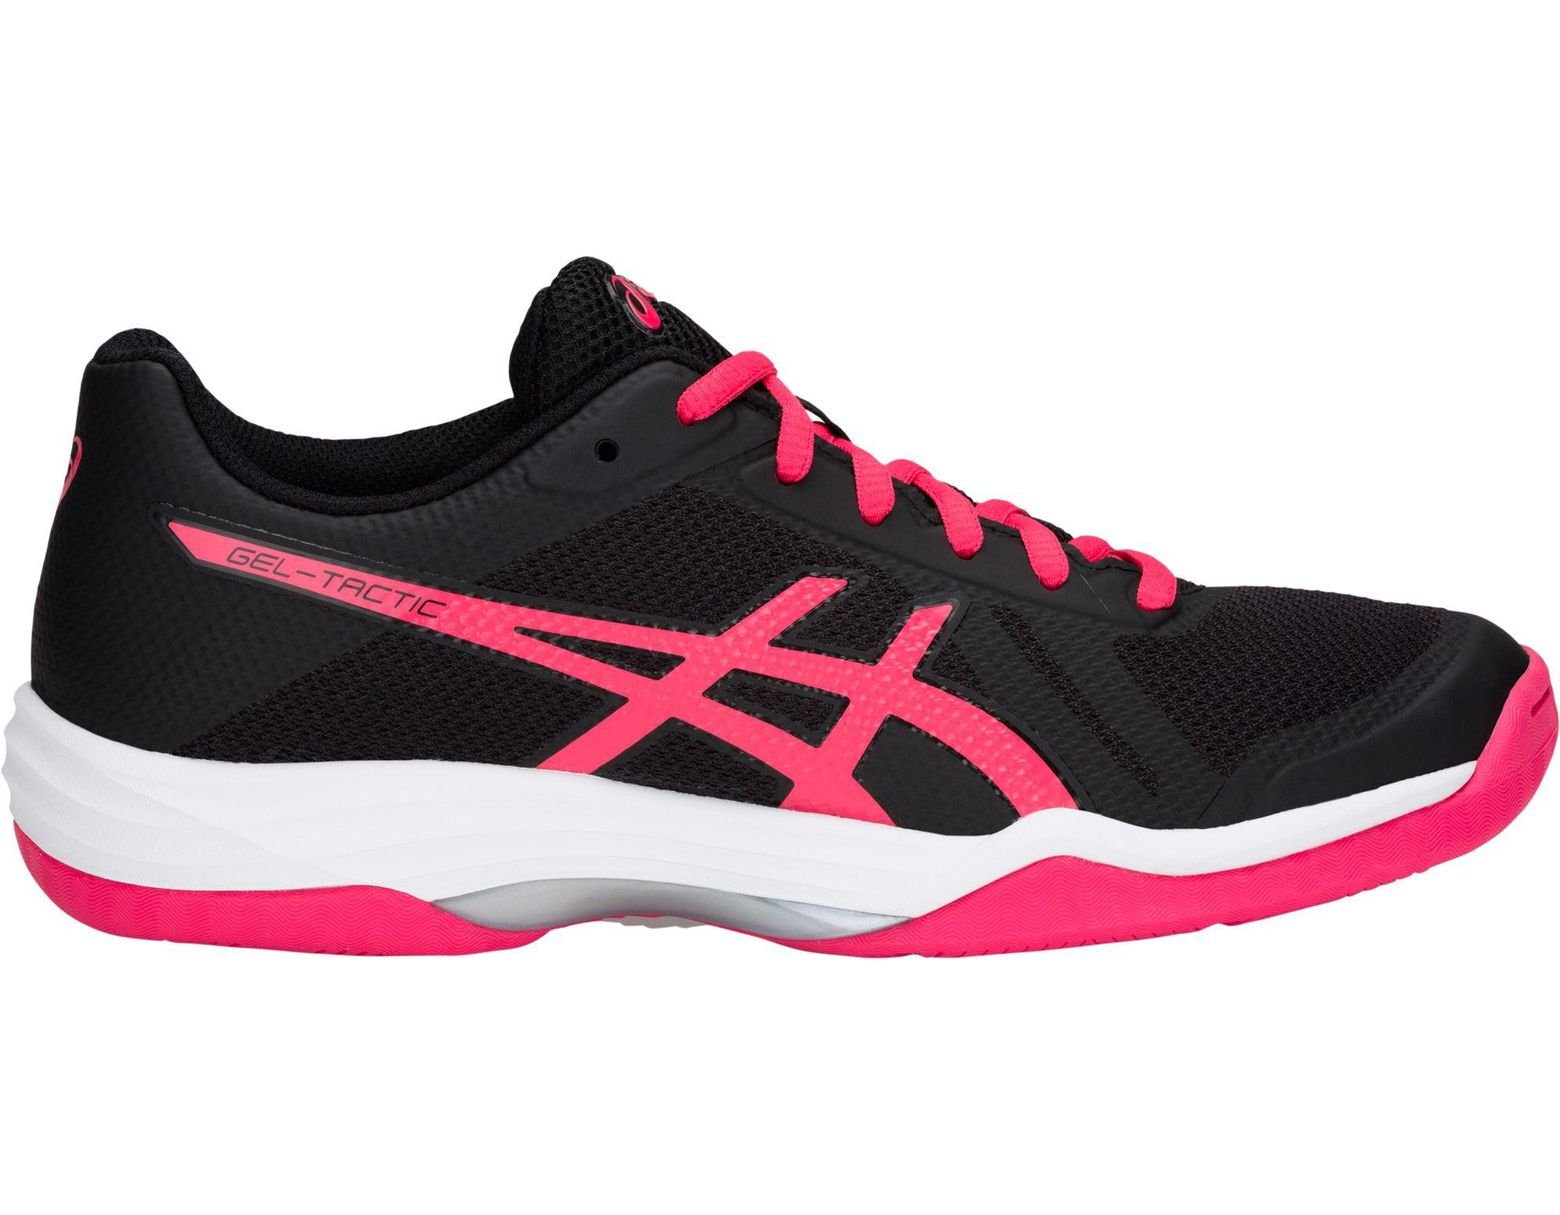 bdd3ab8aa1 Asics Gel-tactic 2 Volleyball Shoes in Pink - Lyst